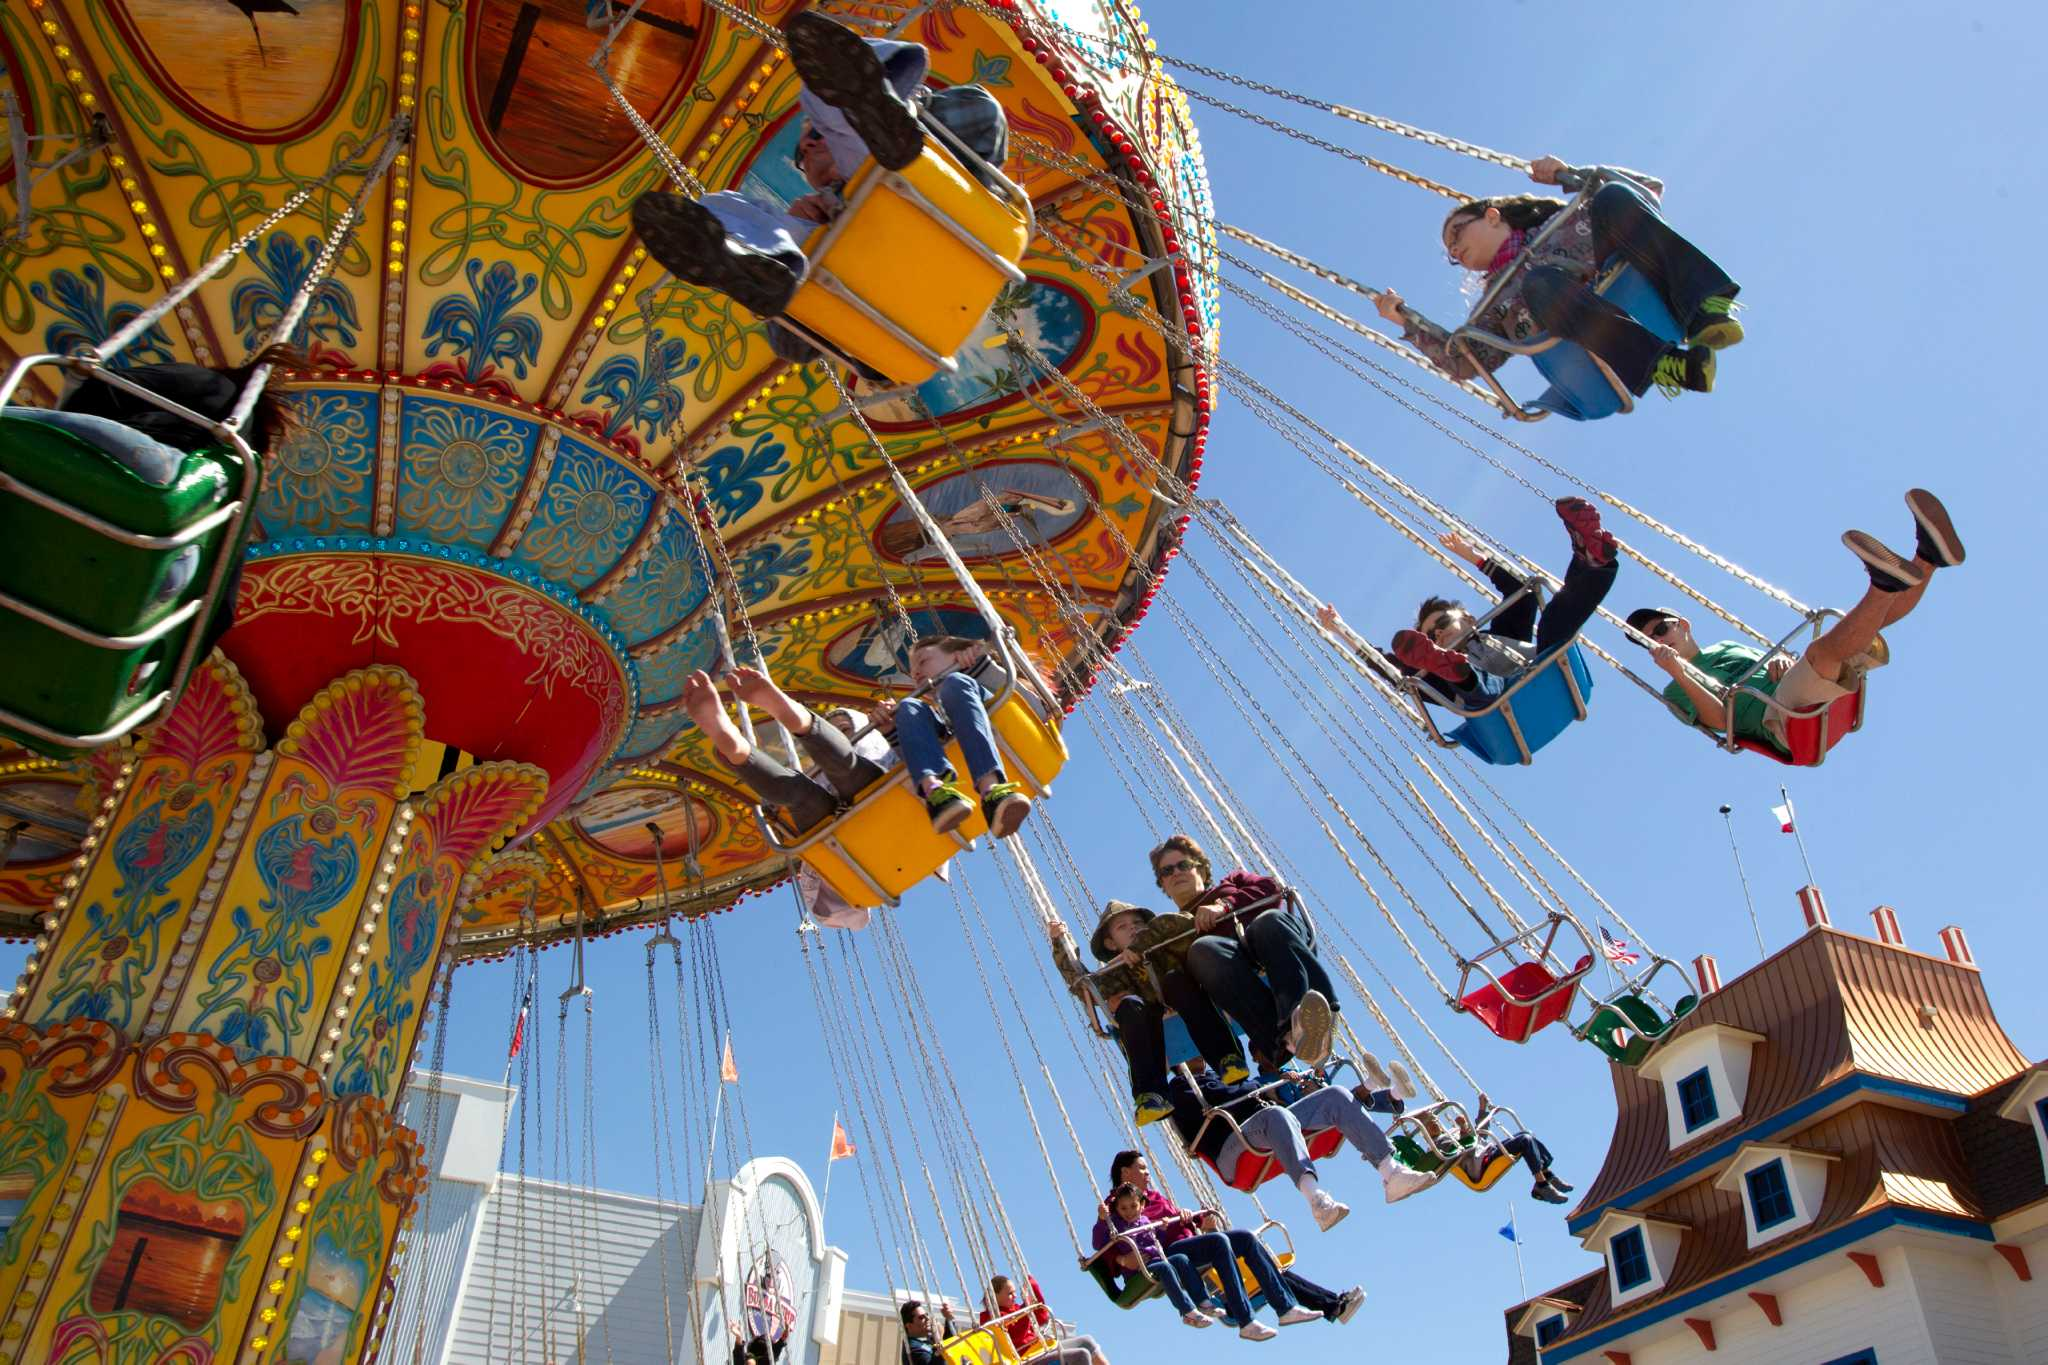 Amusement Parks And Fun Centers Cater To Kids Houstonchronicle Com